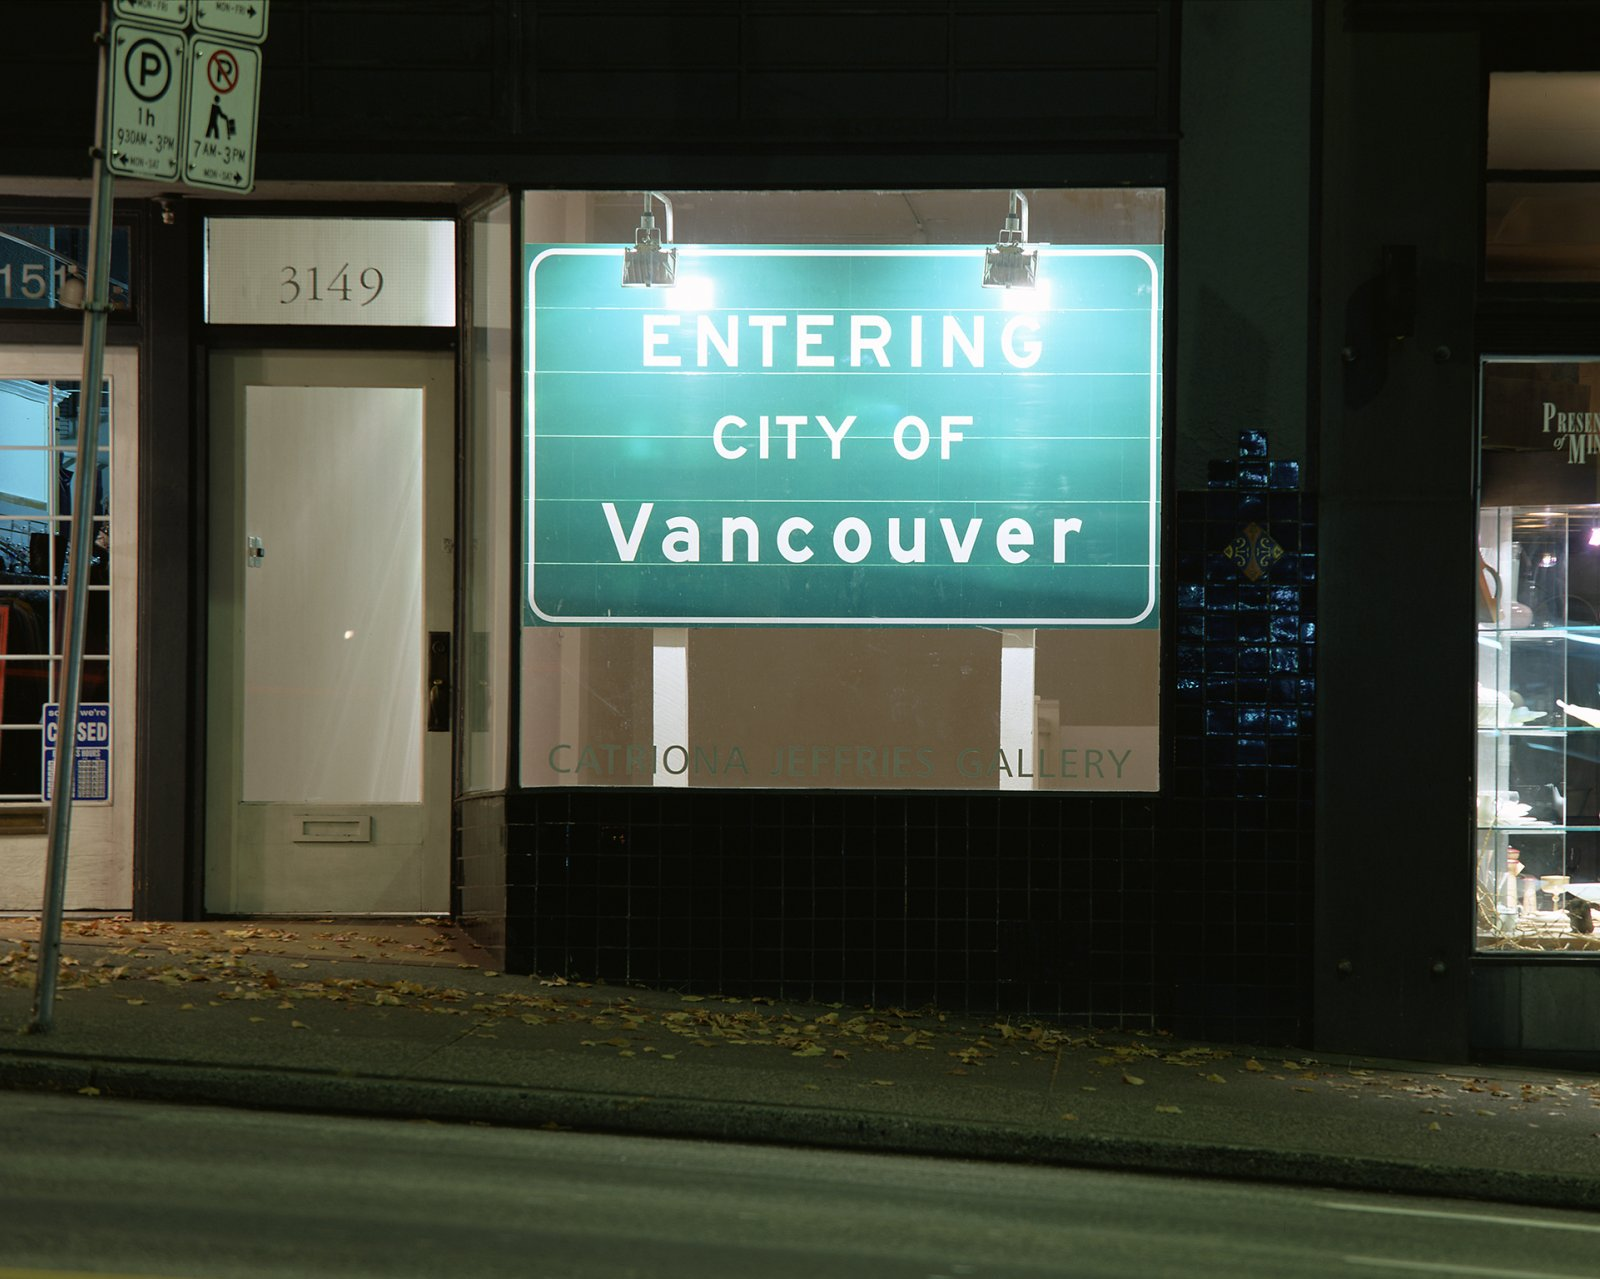 Ron Terada, Entering City of Vancouver, 2002, 3m reflective highway vinyl, extruded aluminum, industrial lights, galvanized steel, wood